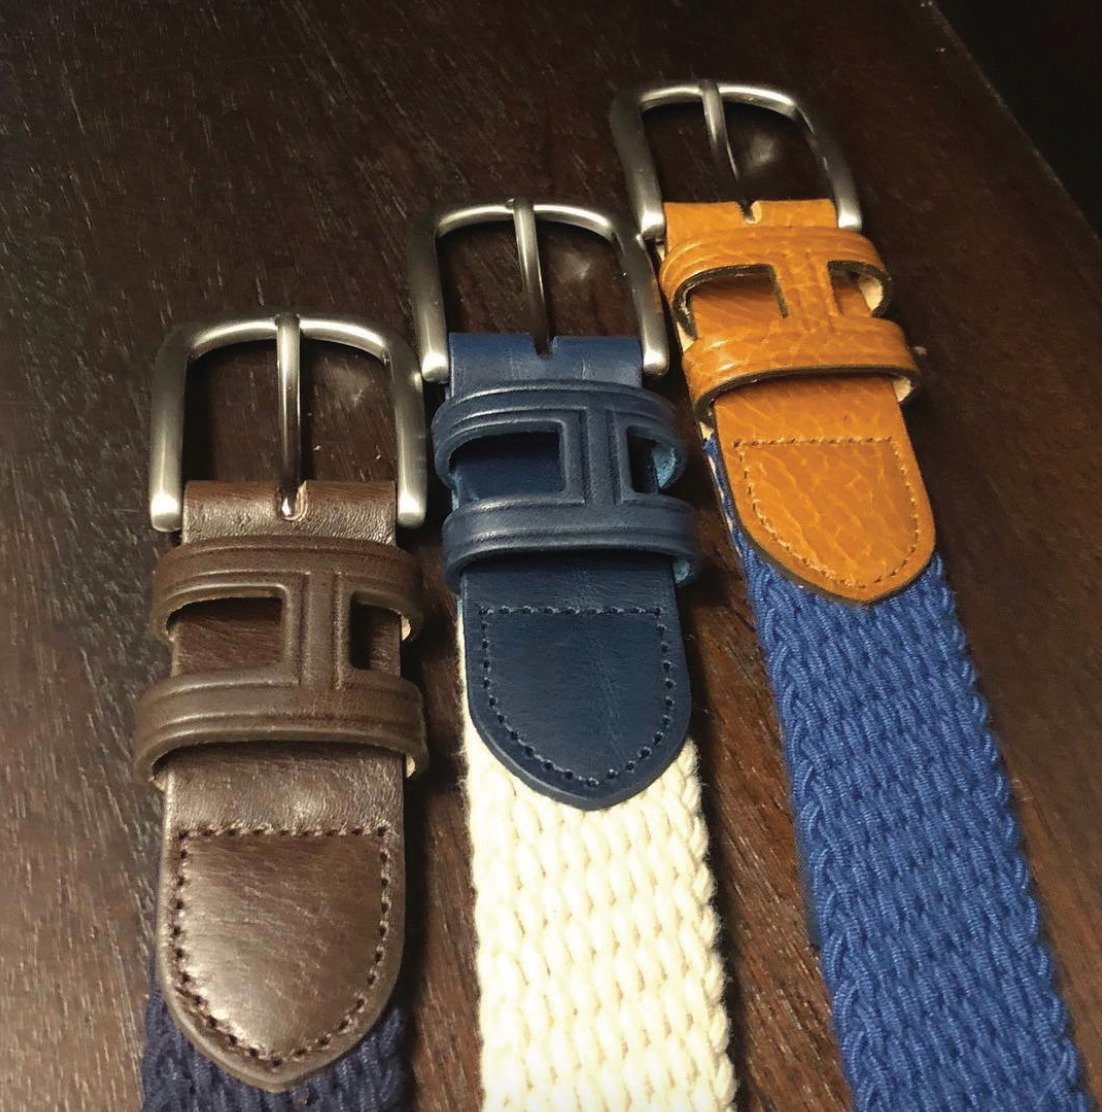 Meet the woven and leather belt, made from parachute string for extra durability. #Hackett #Belt #Leather https://t.co/iHNTgDh3ay